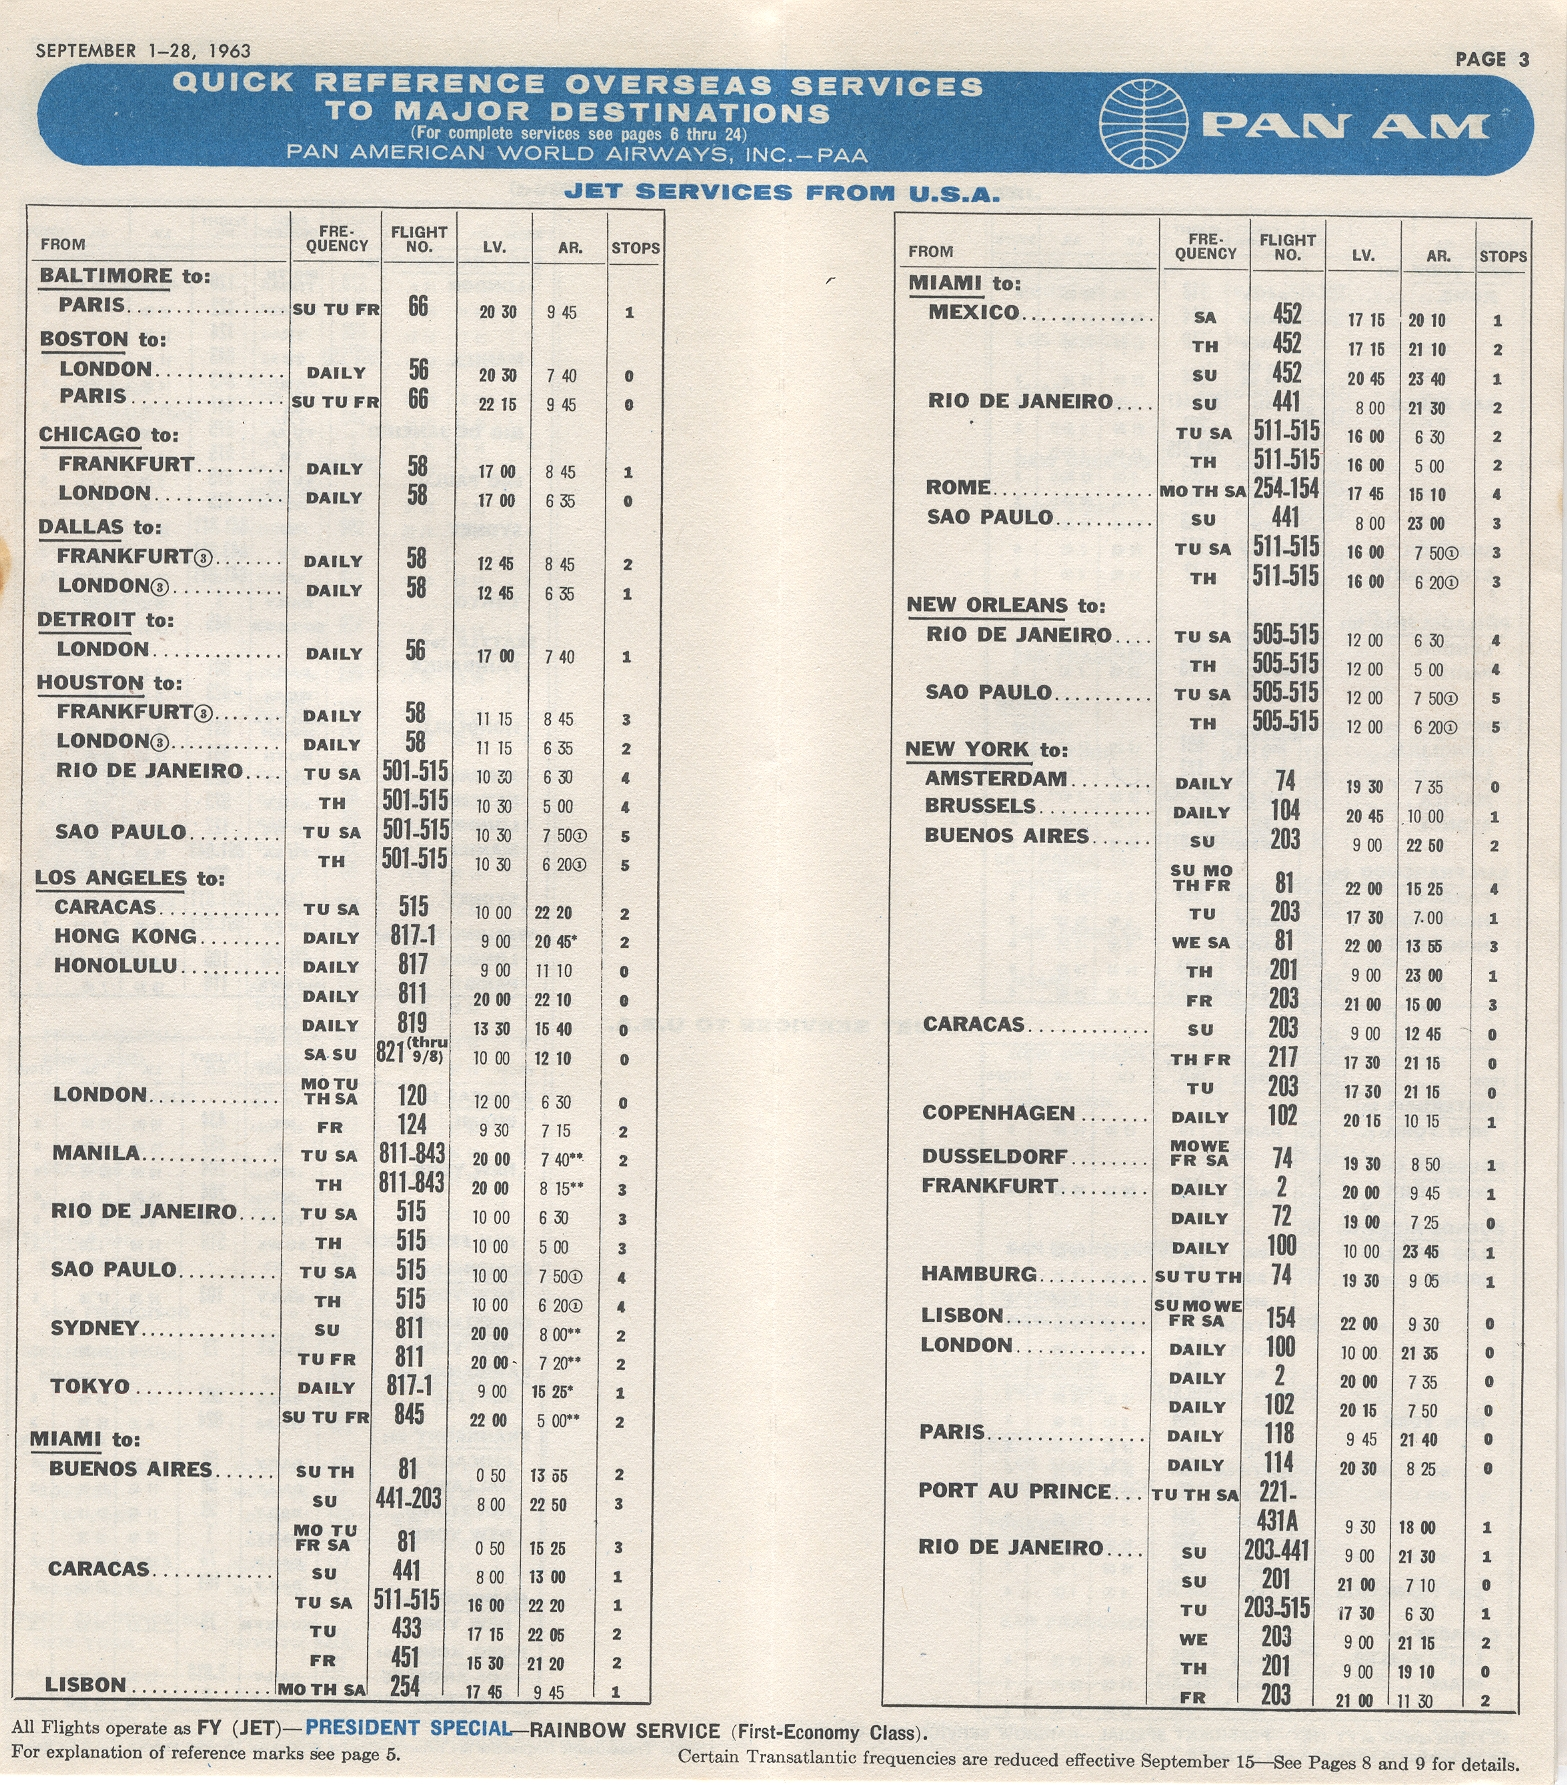 1963, September 1-30  Quick Reference Schedule page 1.